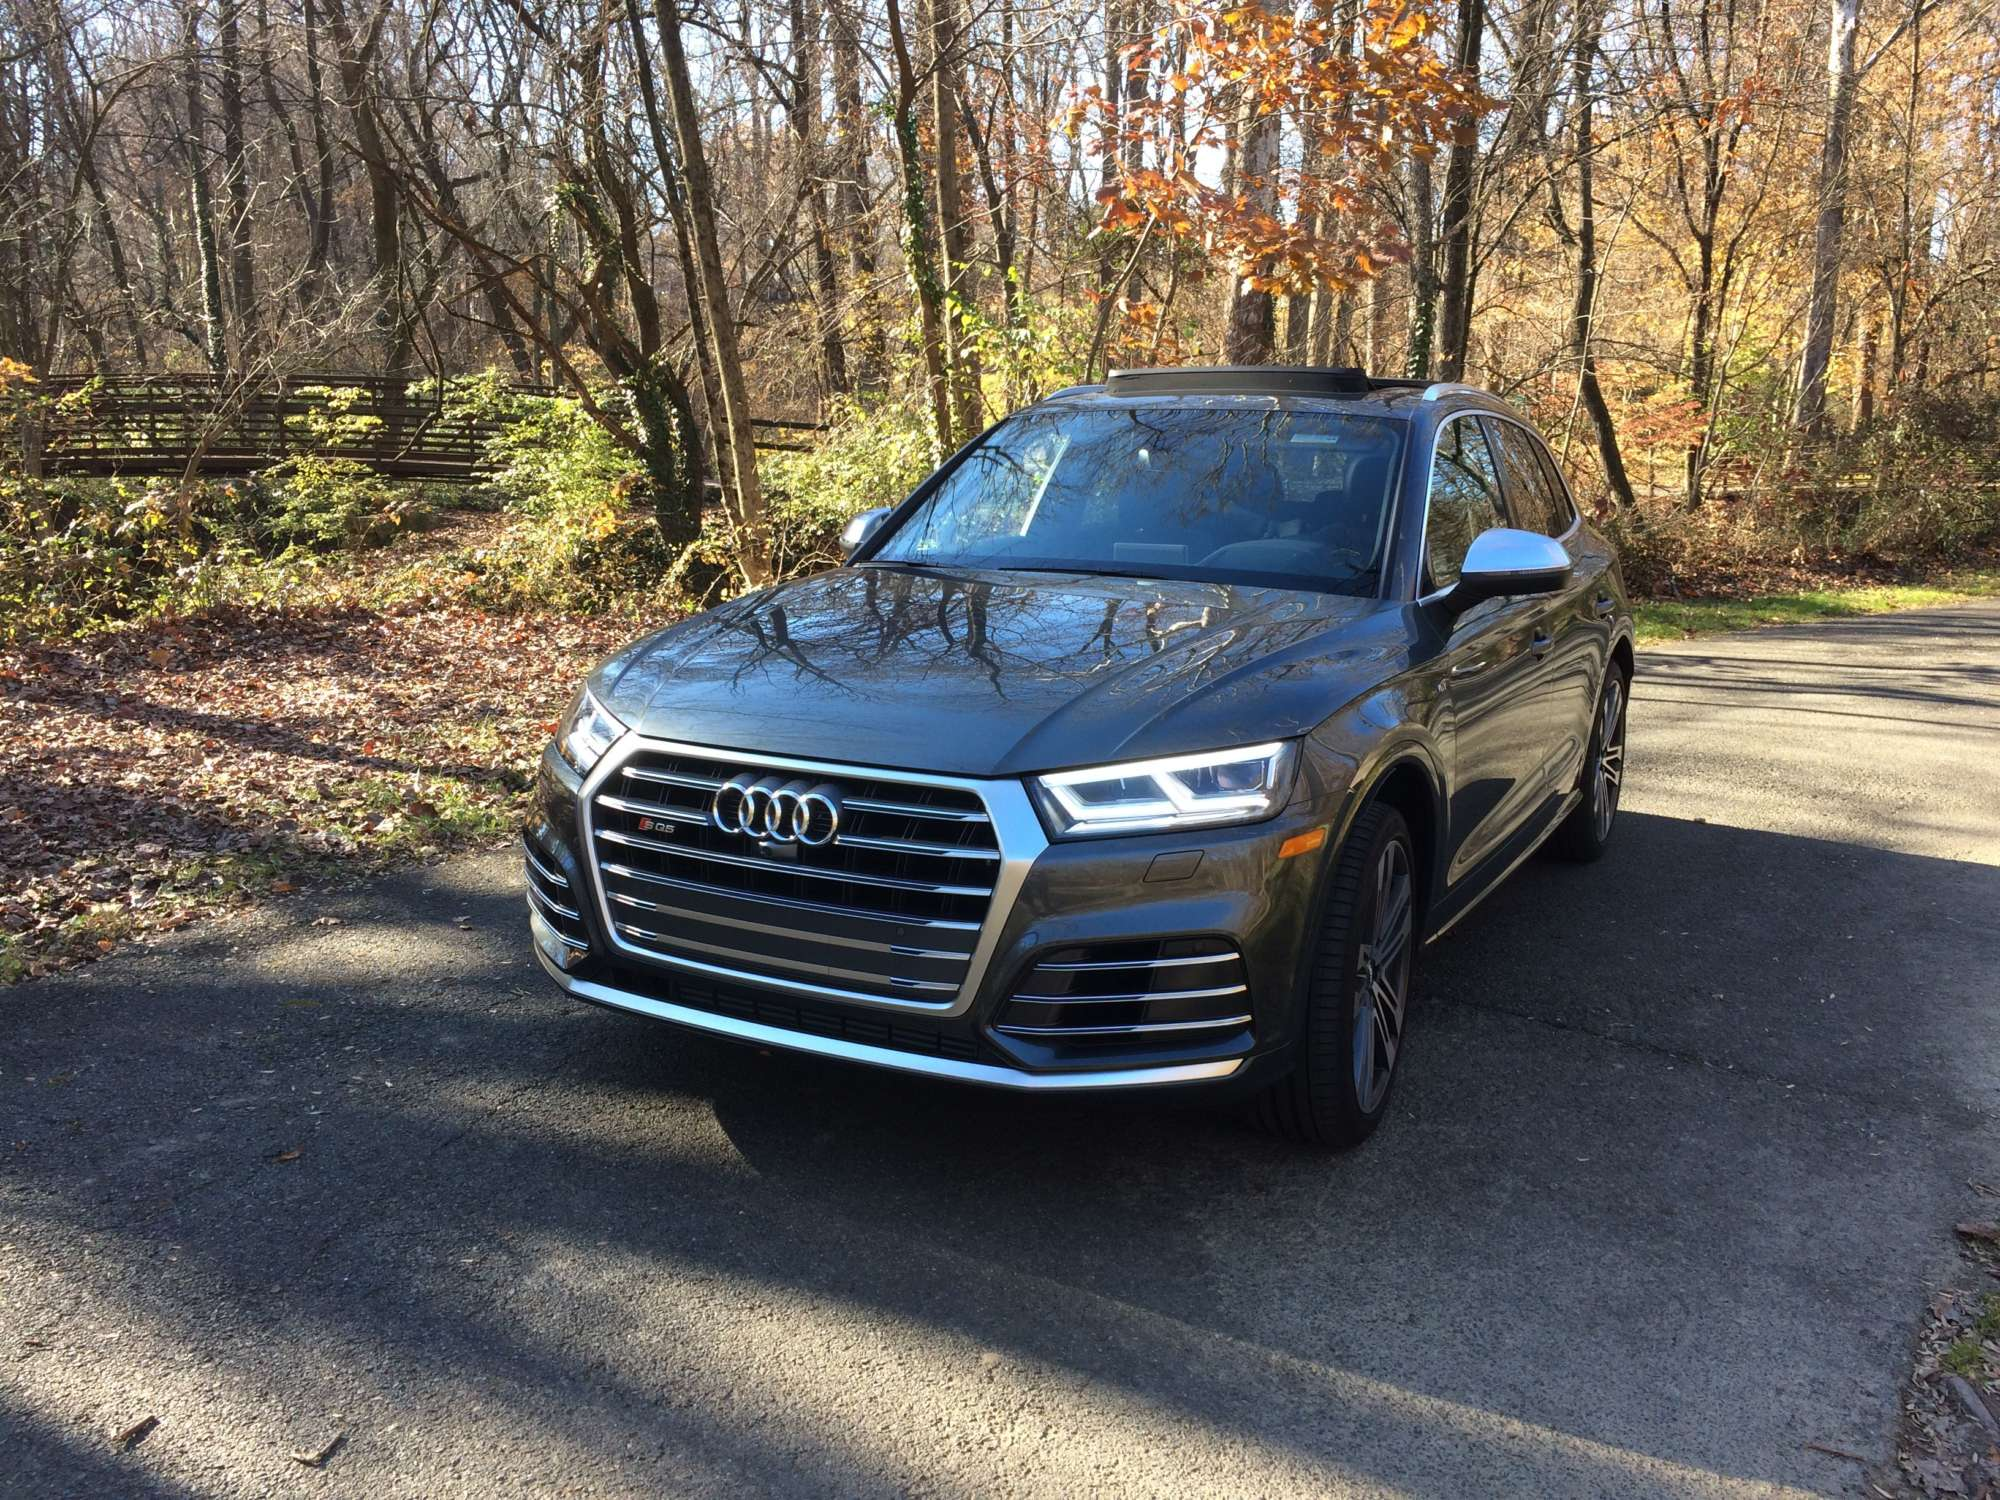 2018 Audi SQ5 combines a sporty ride with crossover utility | WTOP